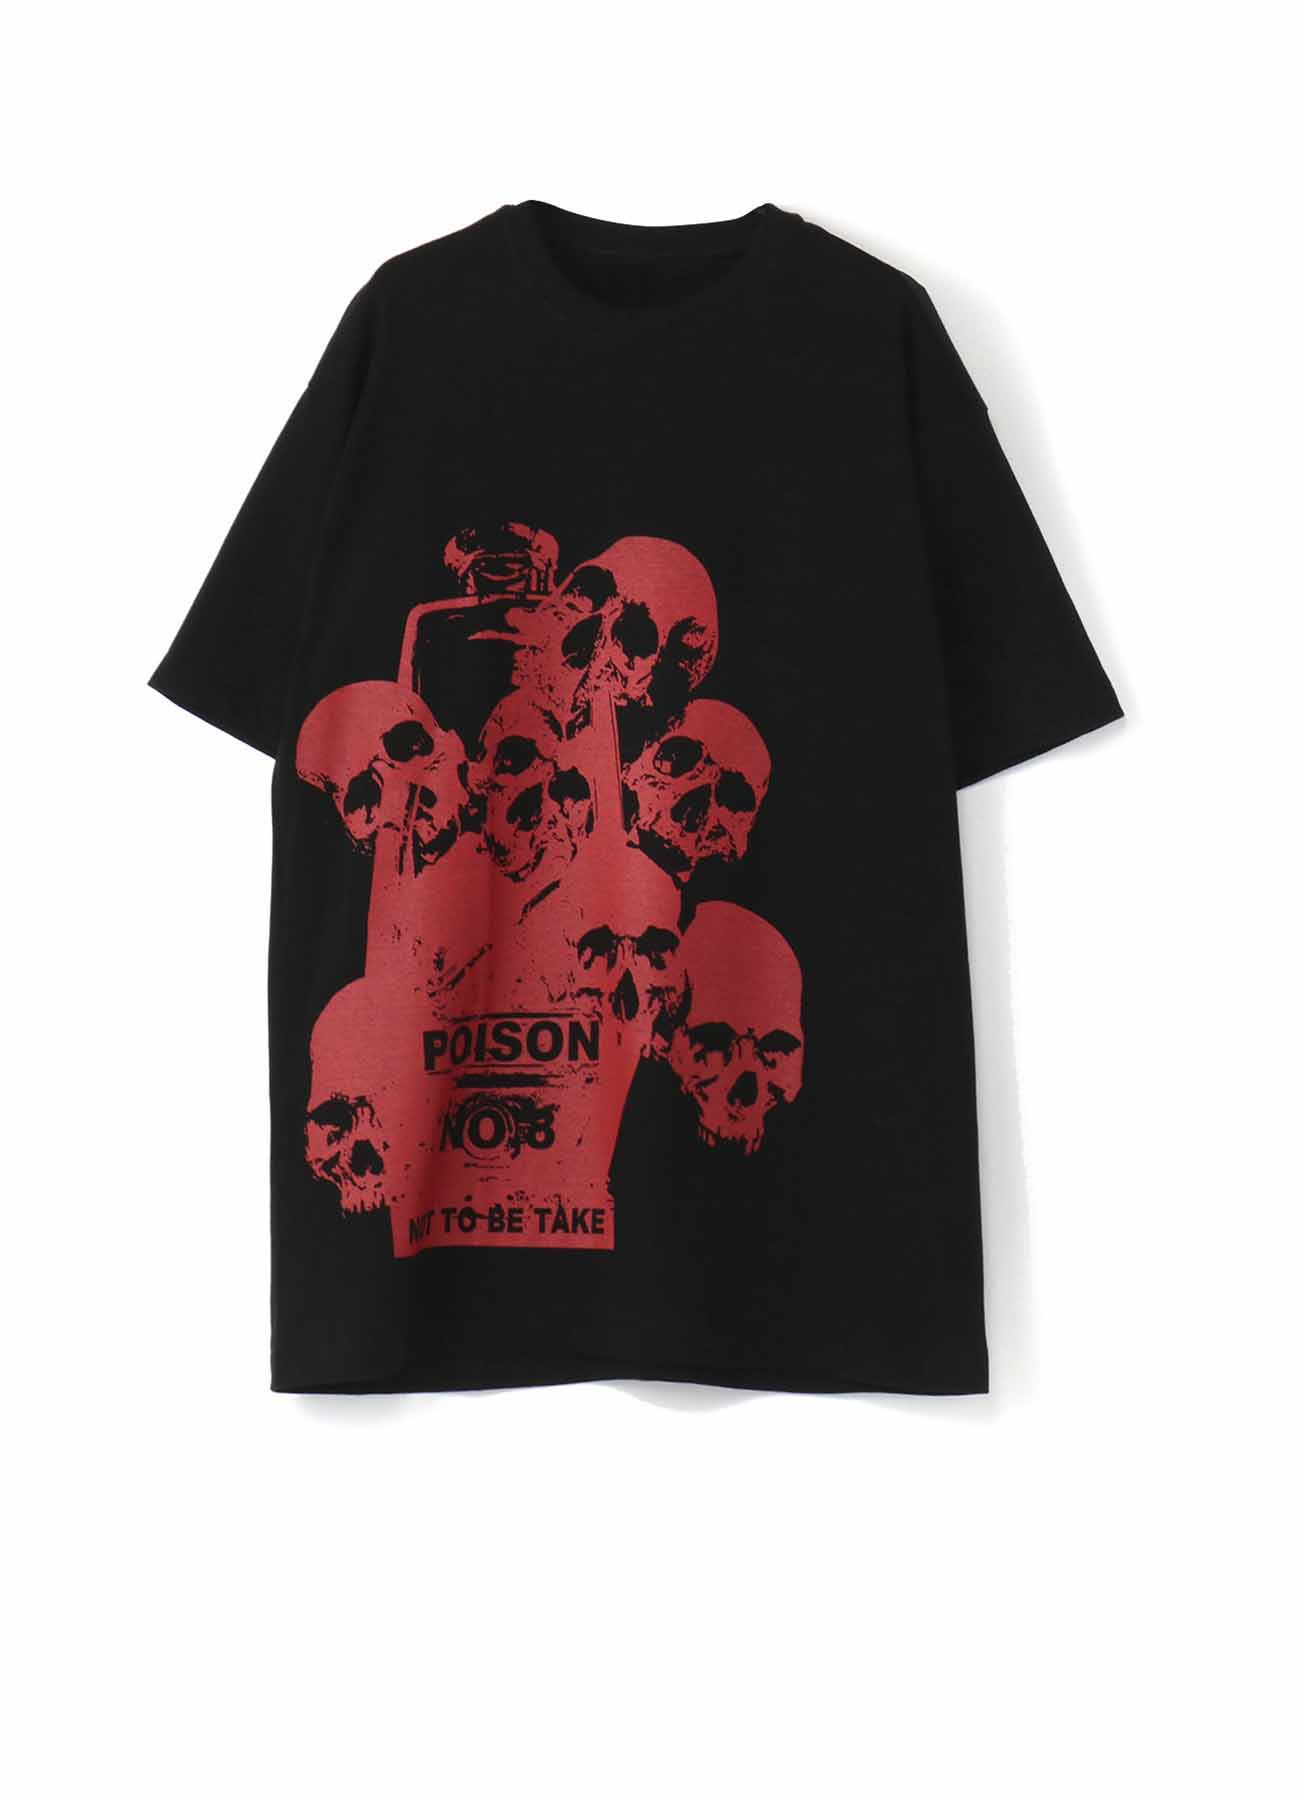 20/CottonJersey Poison Red No8 T-shirt